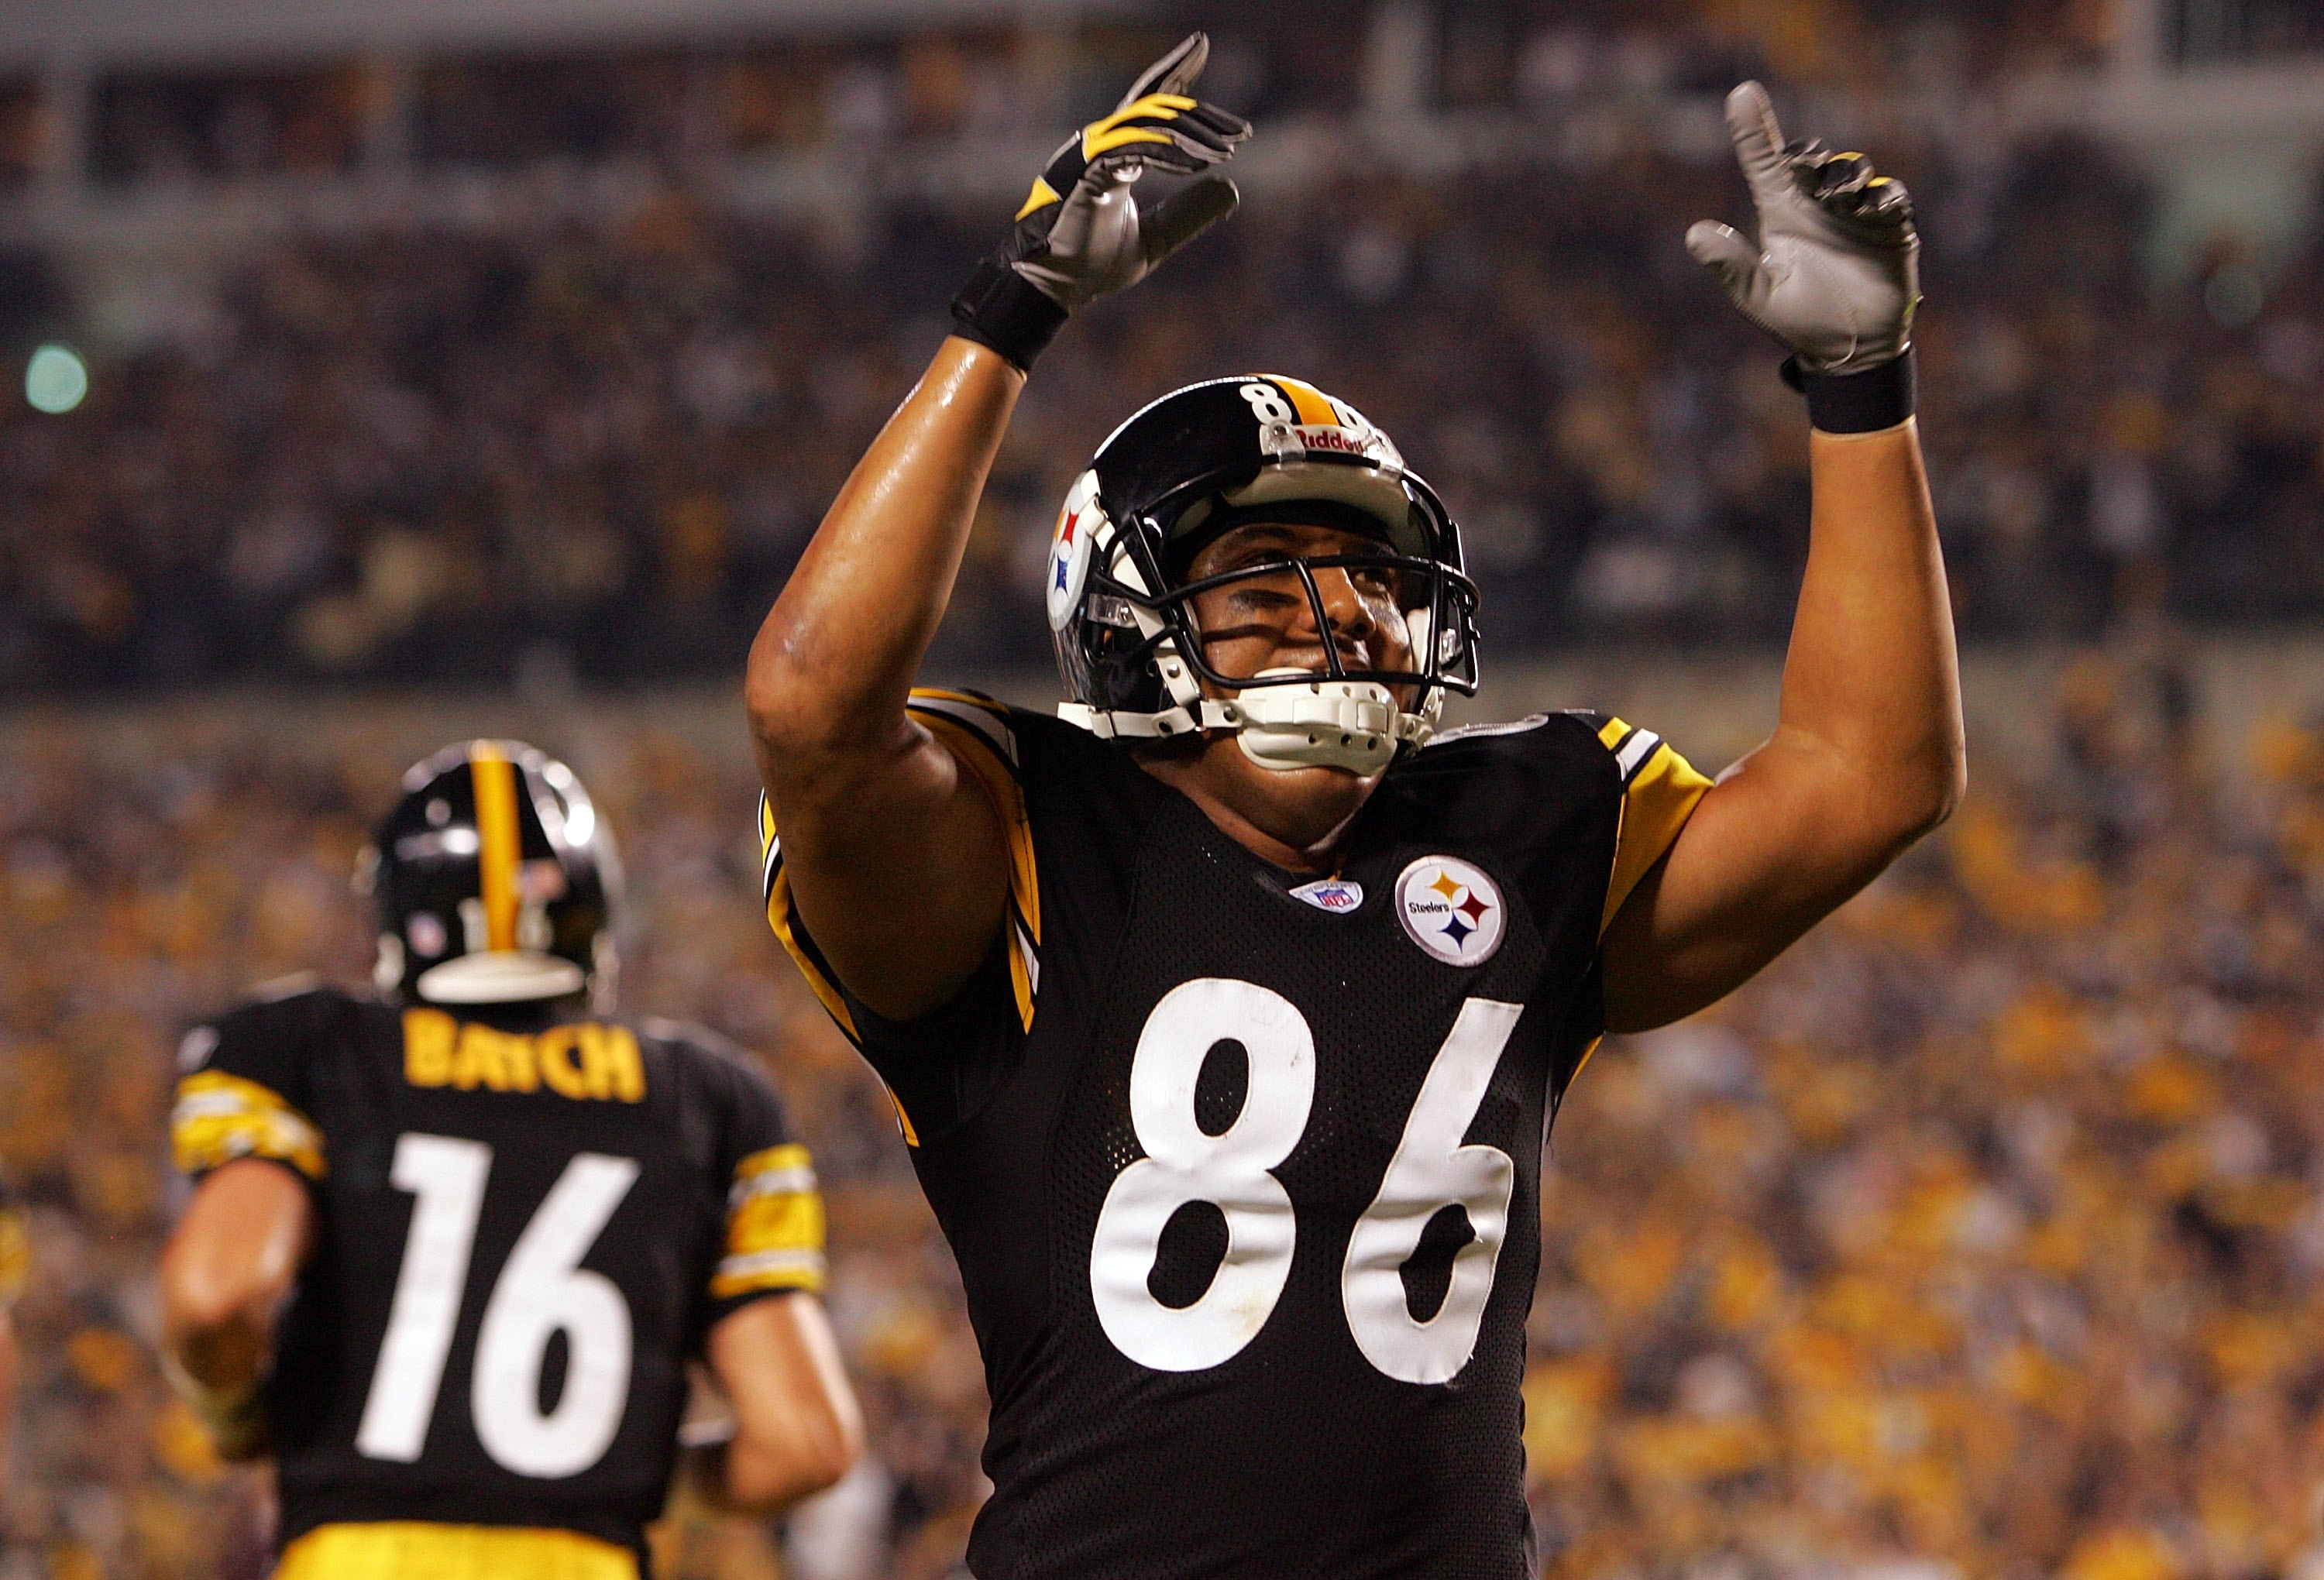 PITTSBURGH - SEPTEMBER 07: Hines Ward #86 of the Pittsburgh Steelers celebrates a touchdown pass from Charlie Batch #16 against the Miami Dolphins during the first game of the NFL season on September 7, 2006 at Heinz Field in Pittsburgh, Pennsylvania.  (P